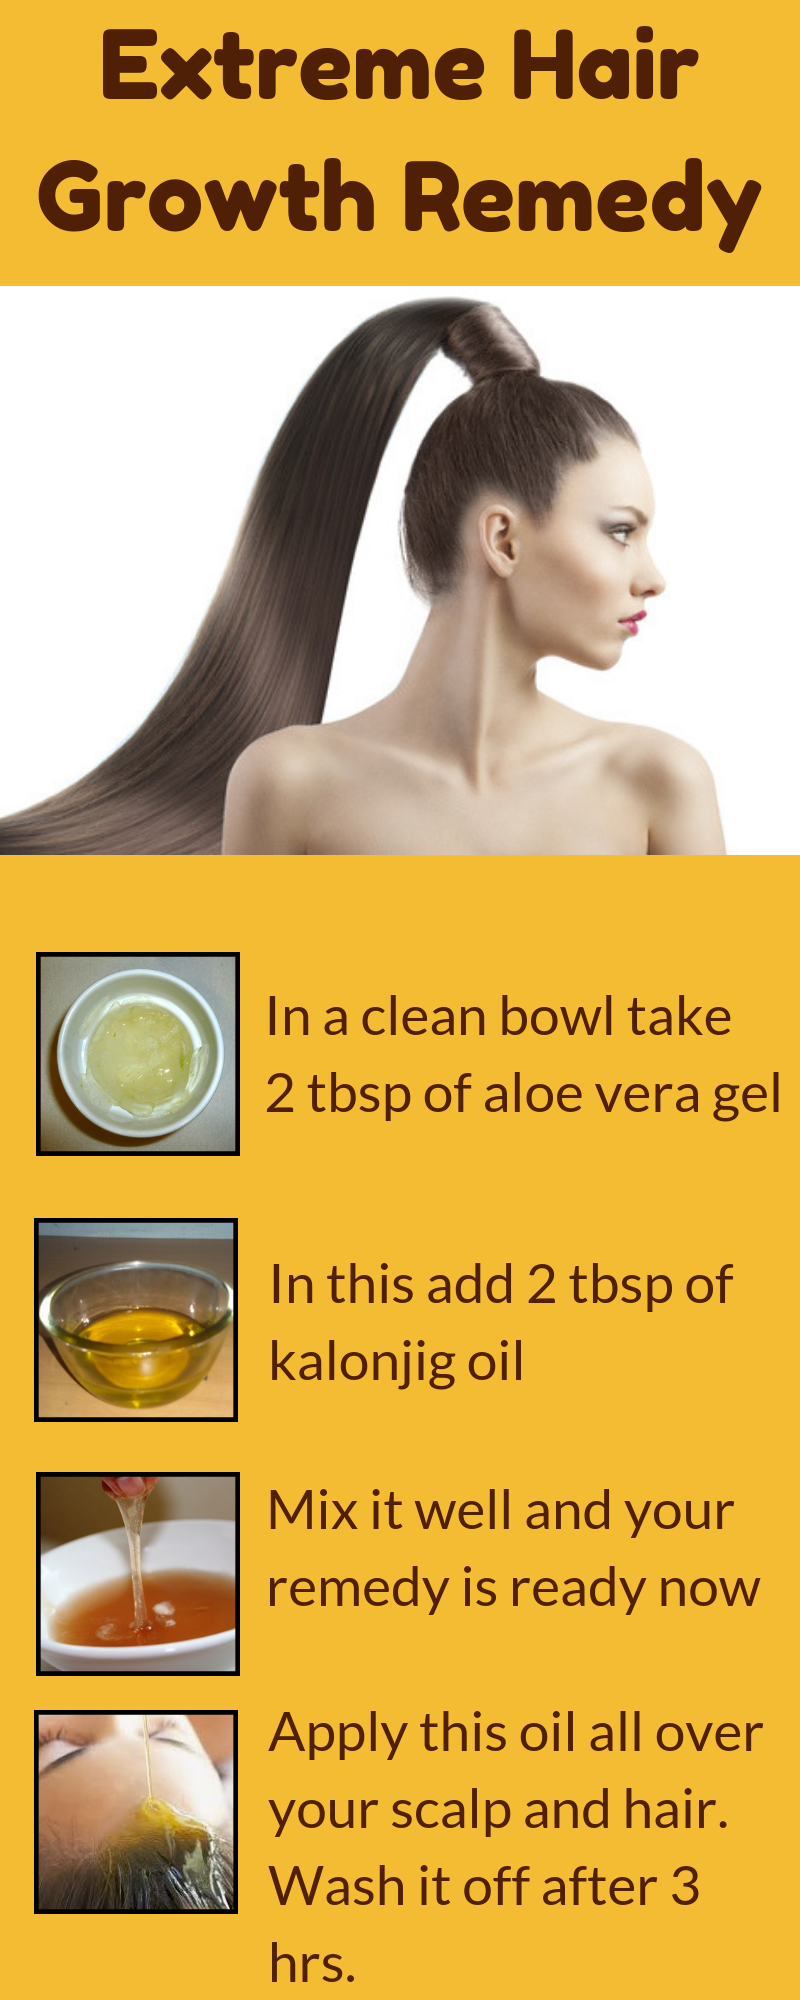 Simple Remedy That You Must Follow To Get Fast Hair Growth In No Time Longhair Healthygai Extreme Hair Growth Hair Remedies For Growth Homemade Hair Products